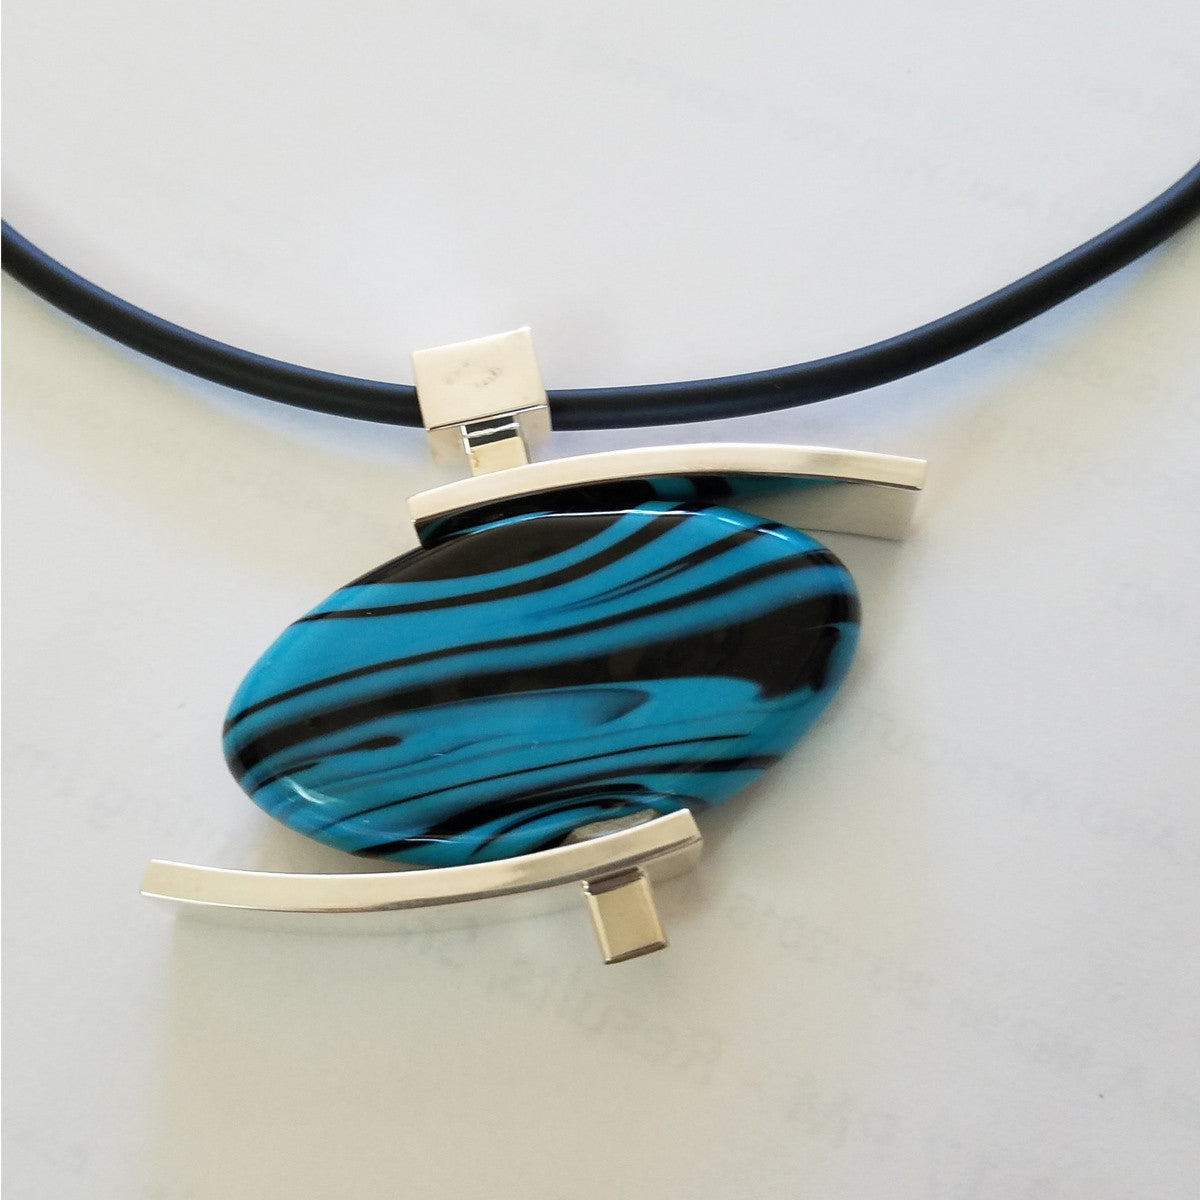 La Foglia D'Oro: Murano Glass + Silver Necklace, Tourquoise